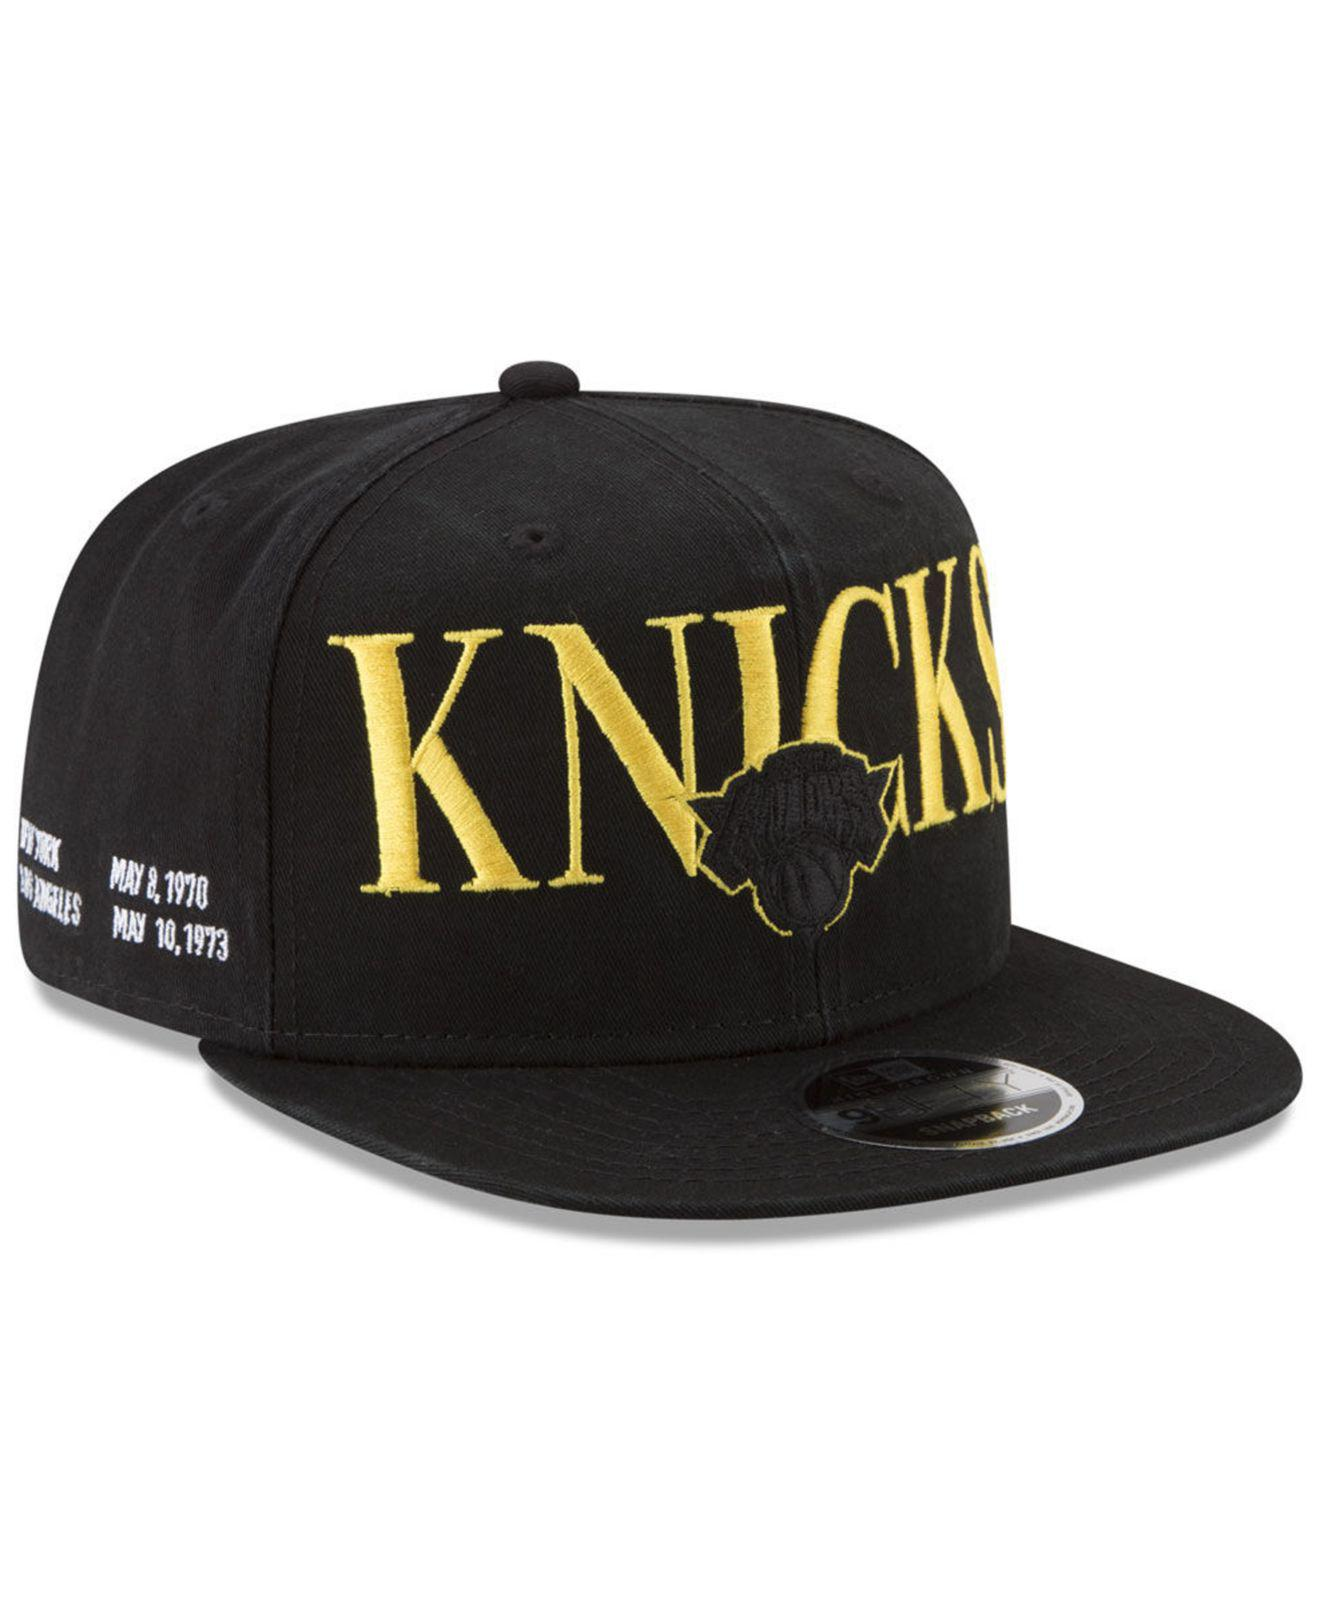 5284474b22e240 ... best price ktz. mens black new york knicks 90s throwback roadie 9fifty  snapback cap 7ef04